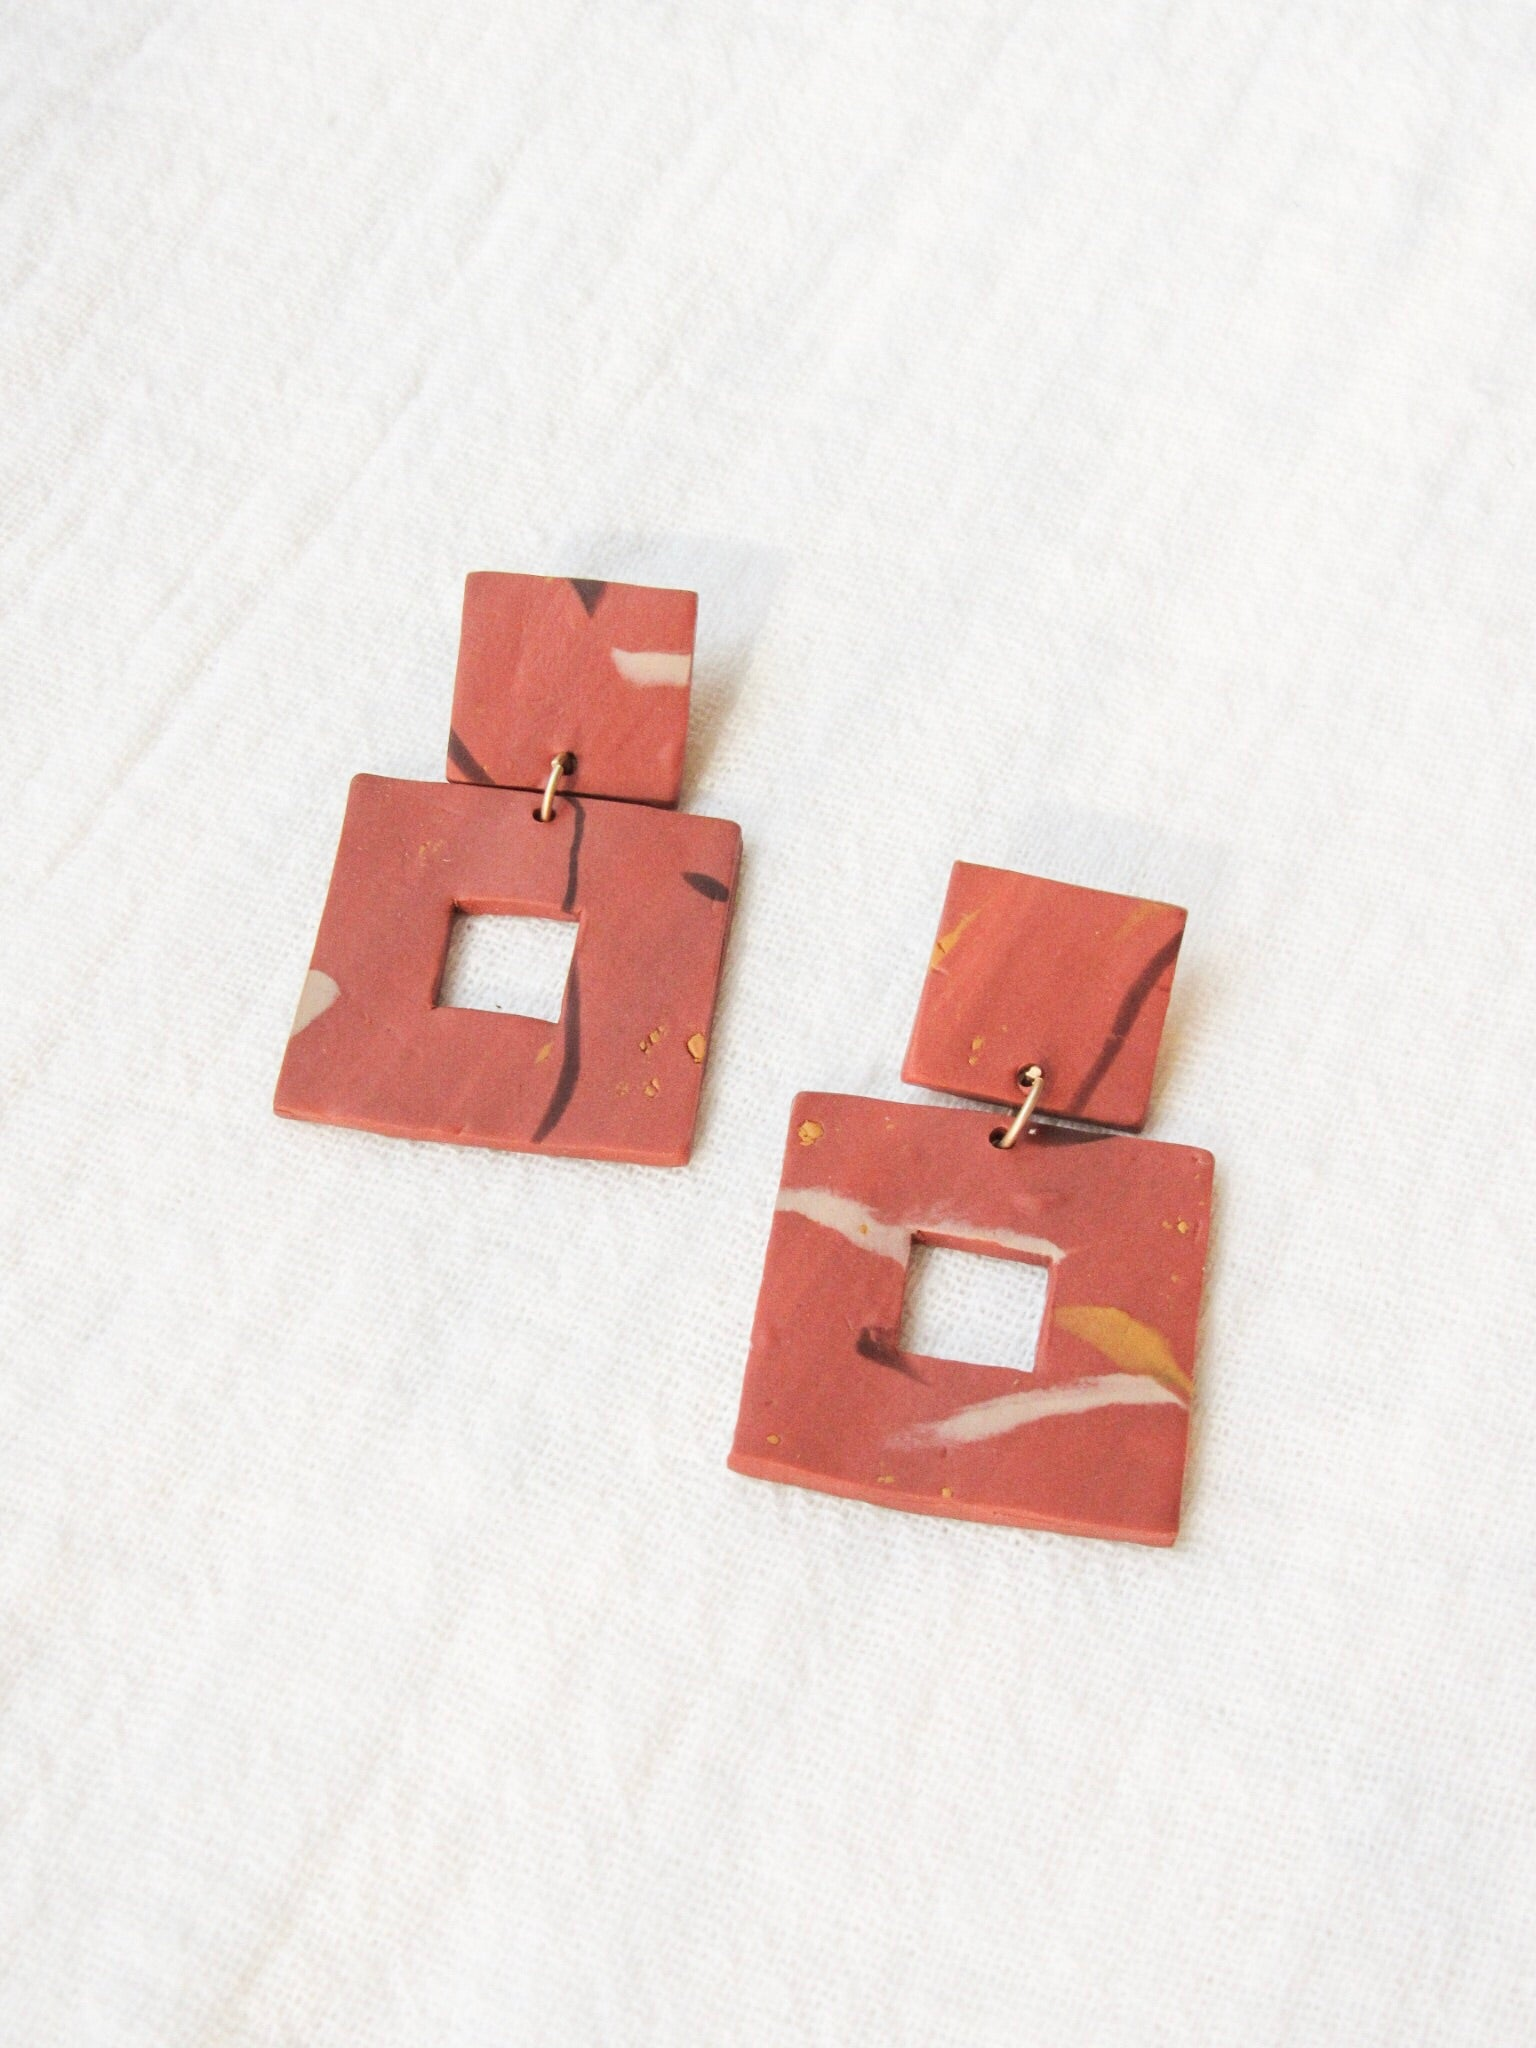 Sequoia Square Earrings by MA.GA.NDA